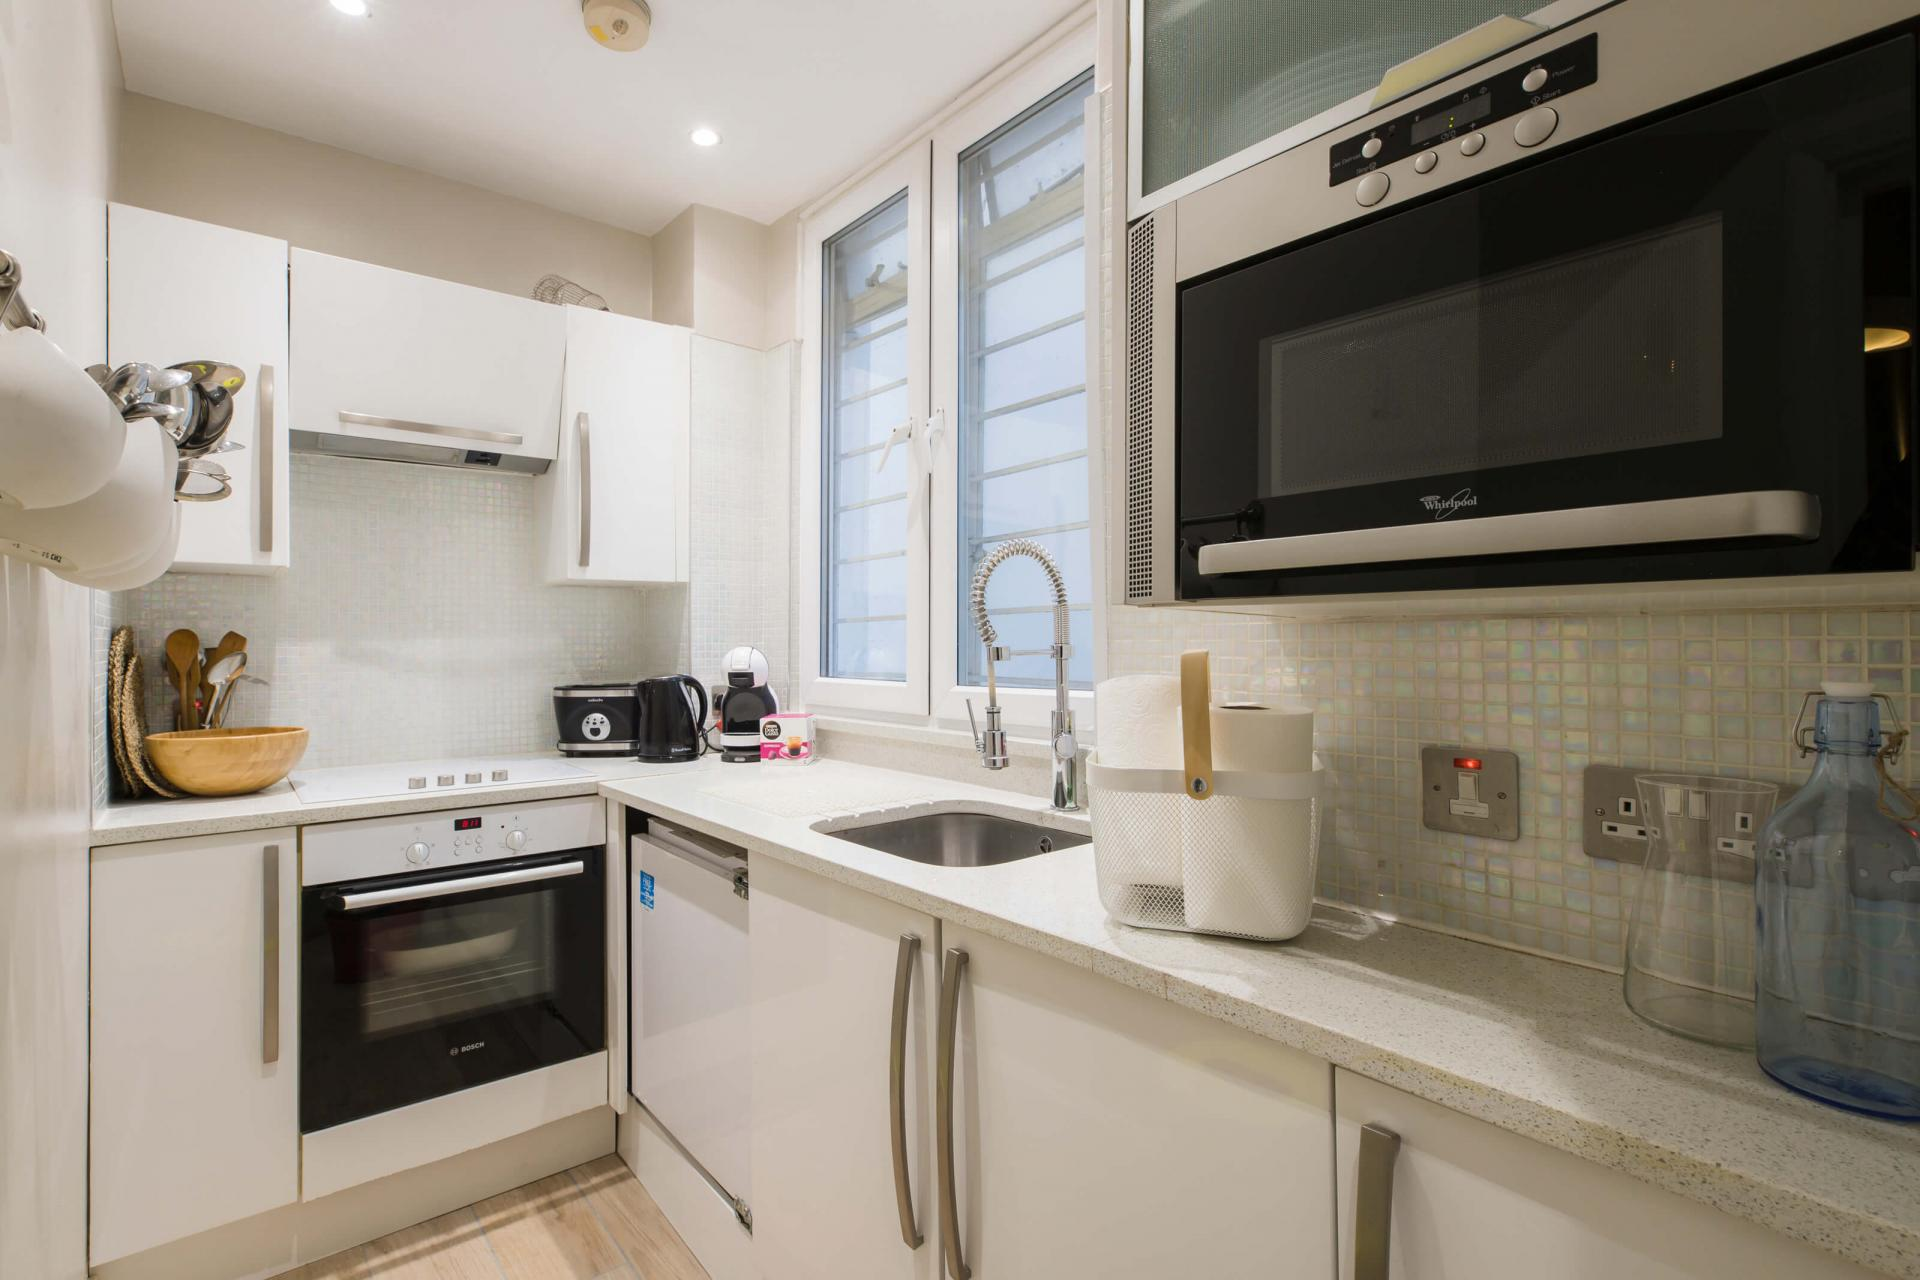 Kitchen at Westbourne Gardens Apartment, Bayswater, London